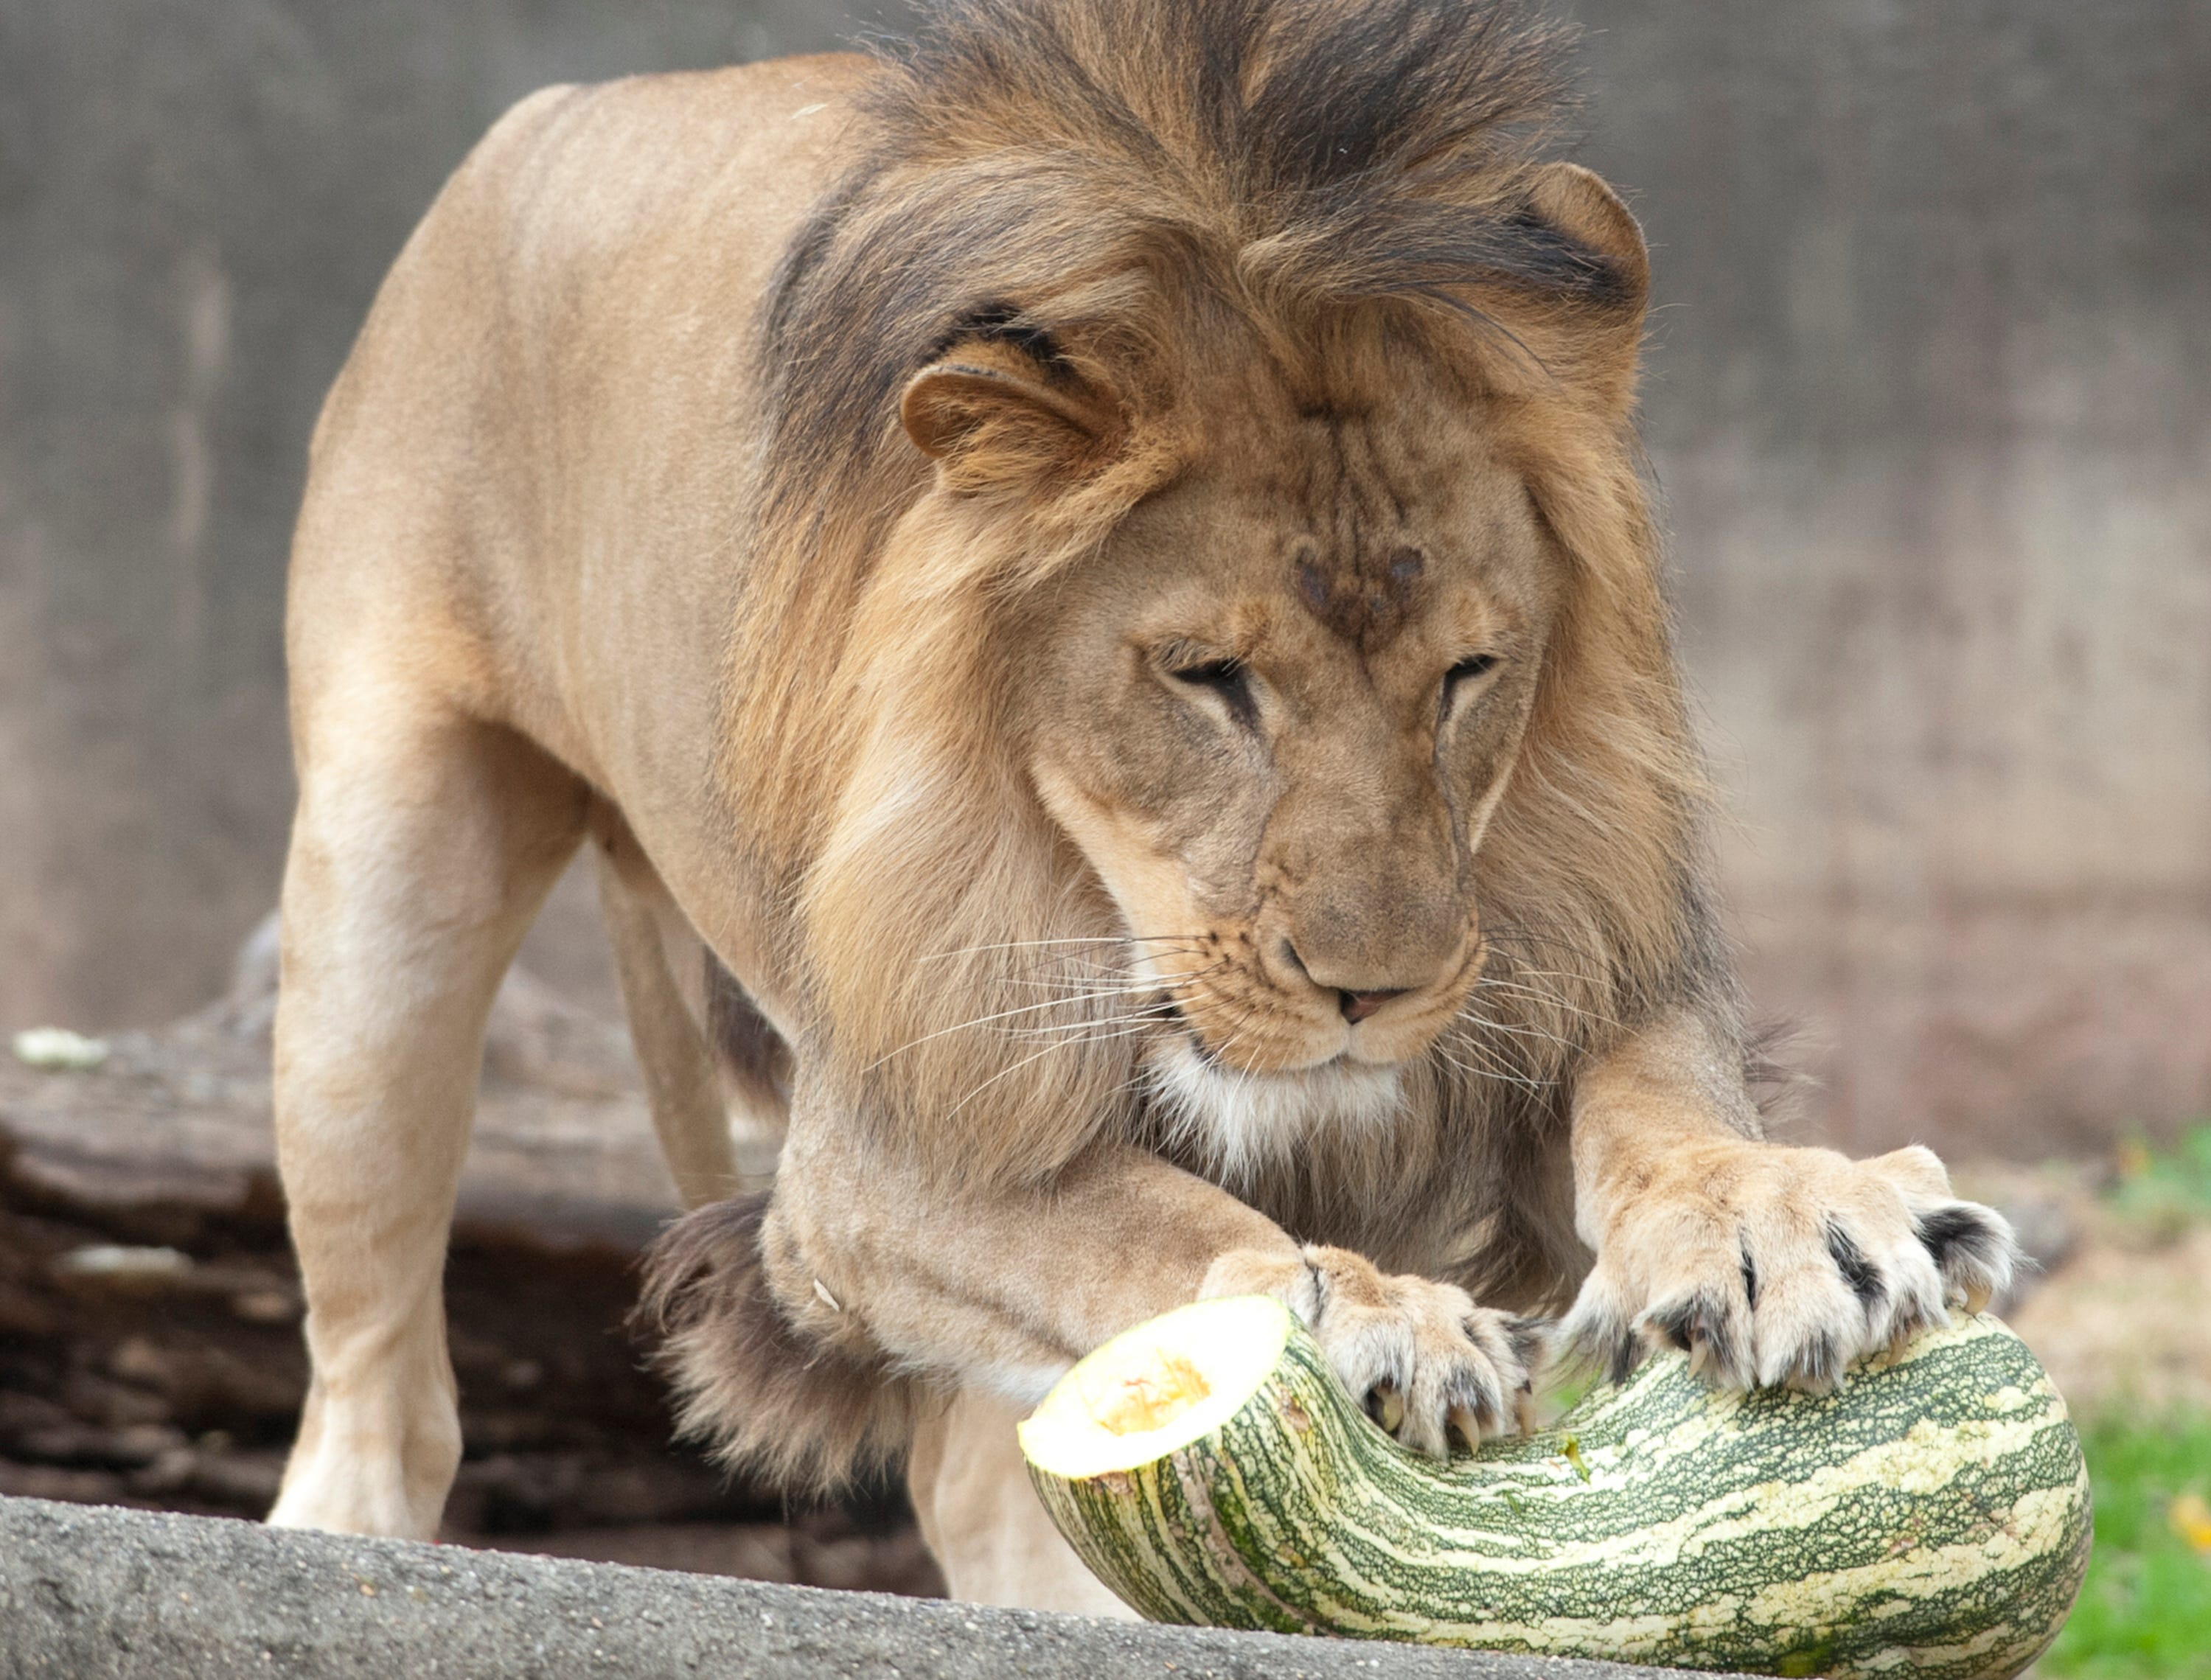 Siyanda, a 3-yr-old male lion pounces on a gourd at the Louisville Zoo's annual pumpkin smash. The pumpkins being fed to the animals are from the zoo's Halloween event. November 04, 2018